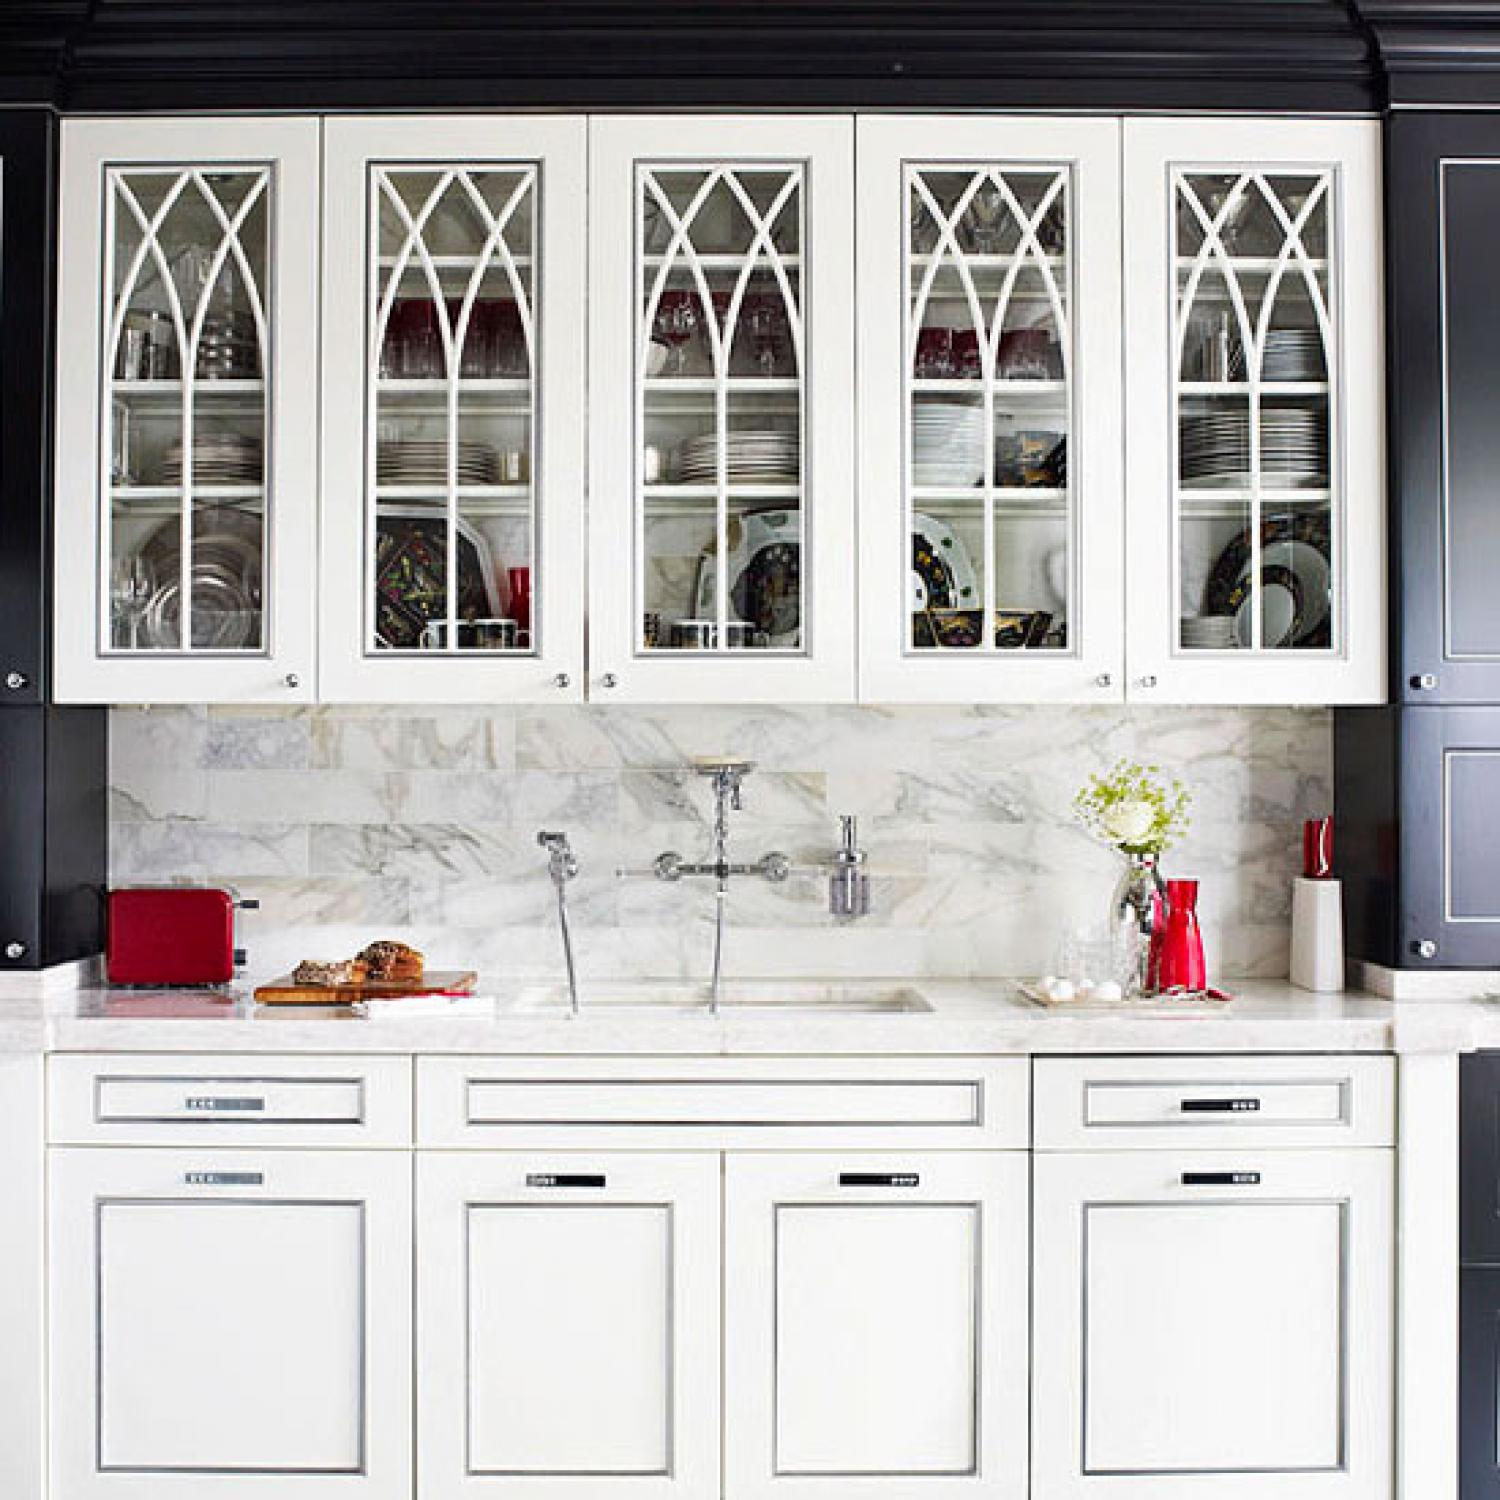 Kitchen In A Cabinet: Distinctive Kitchen Cabinets With Glass-Front Doors